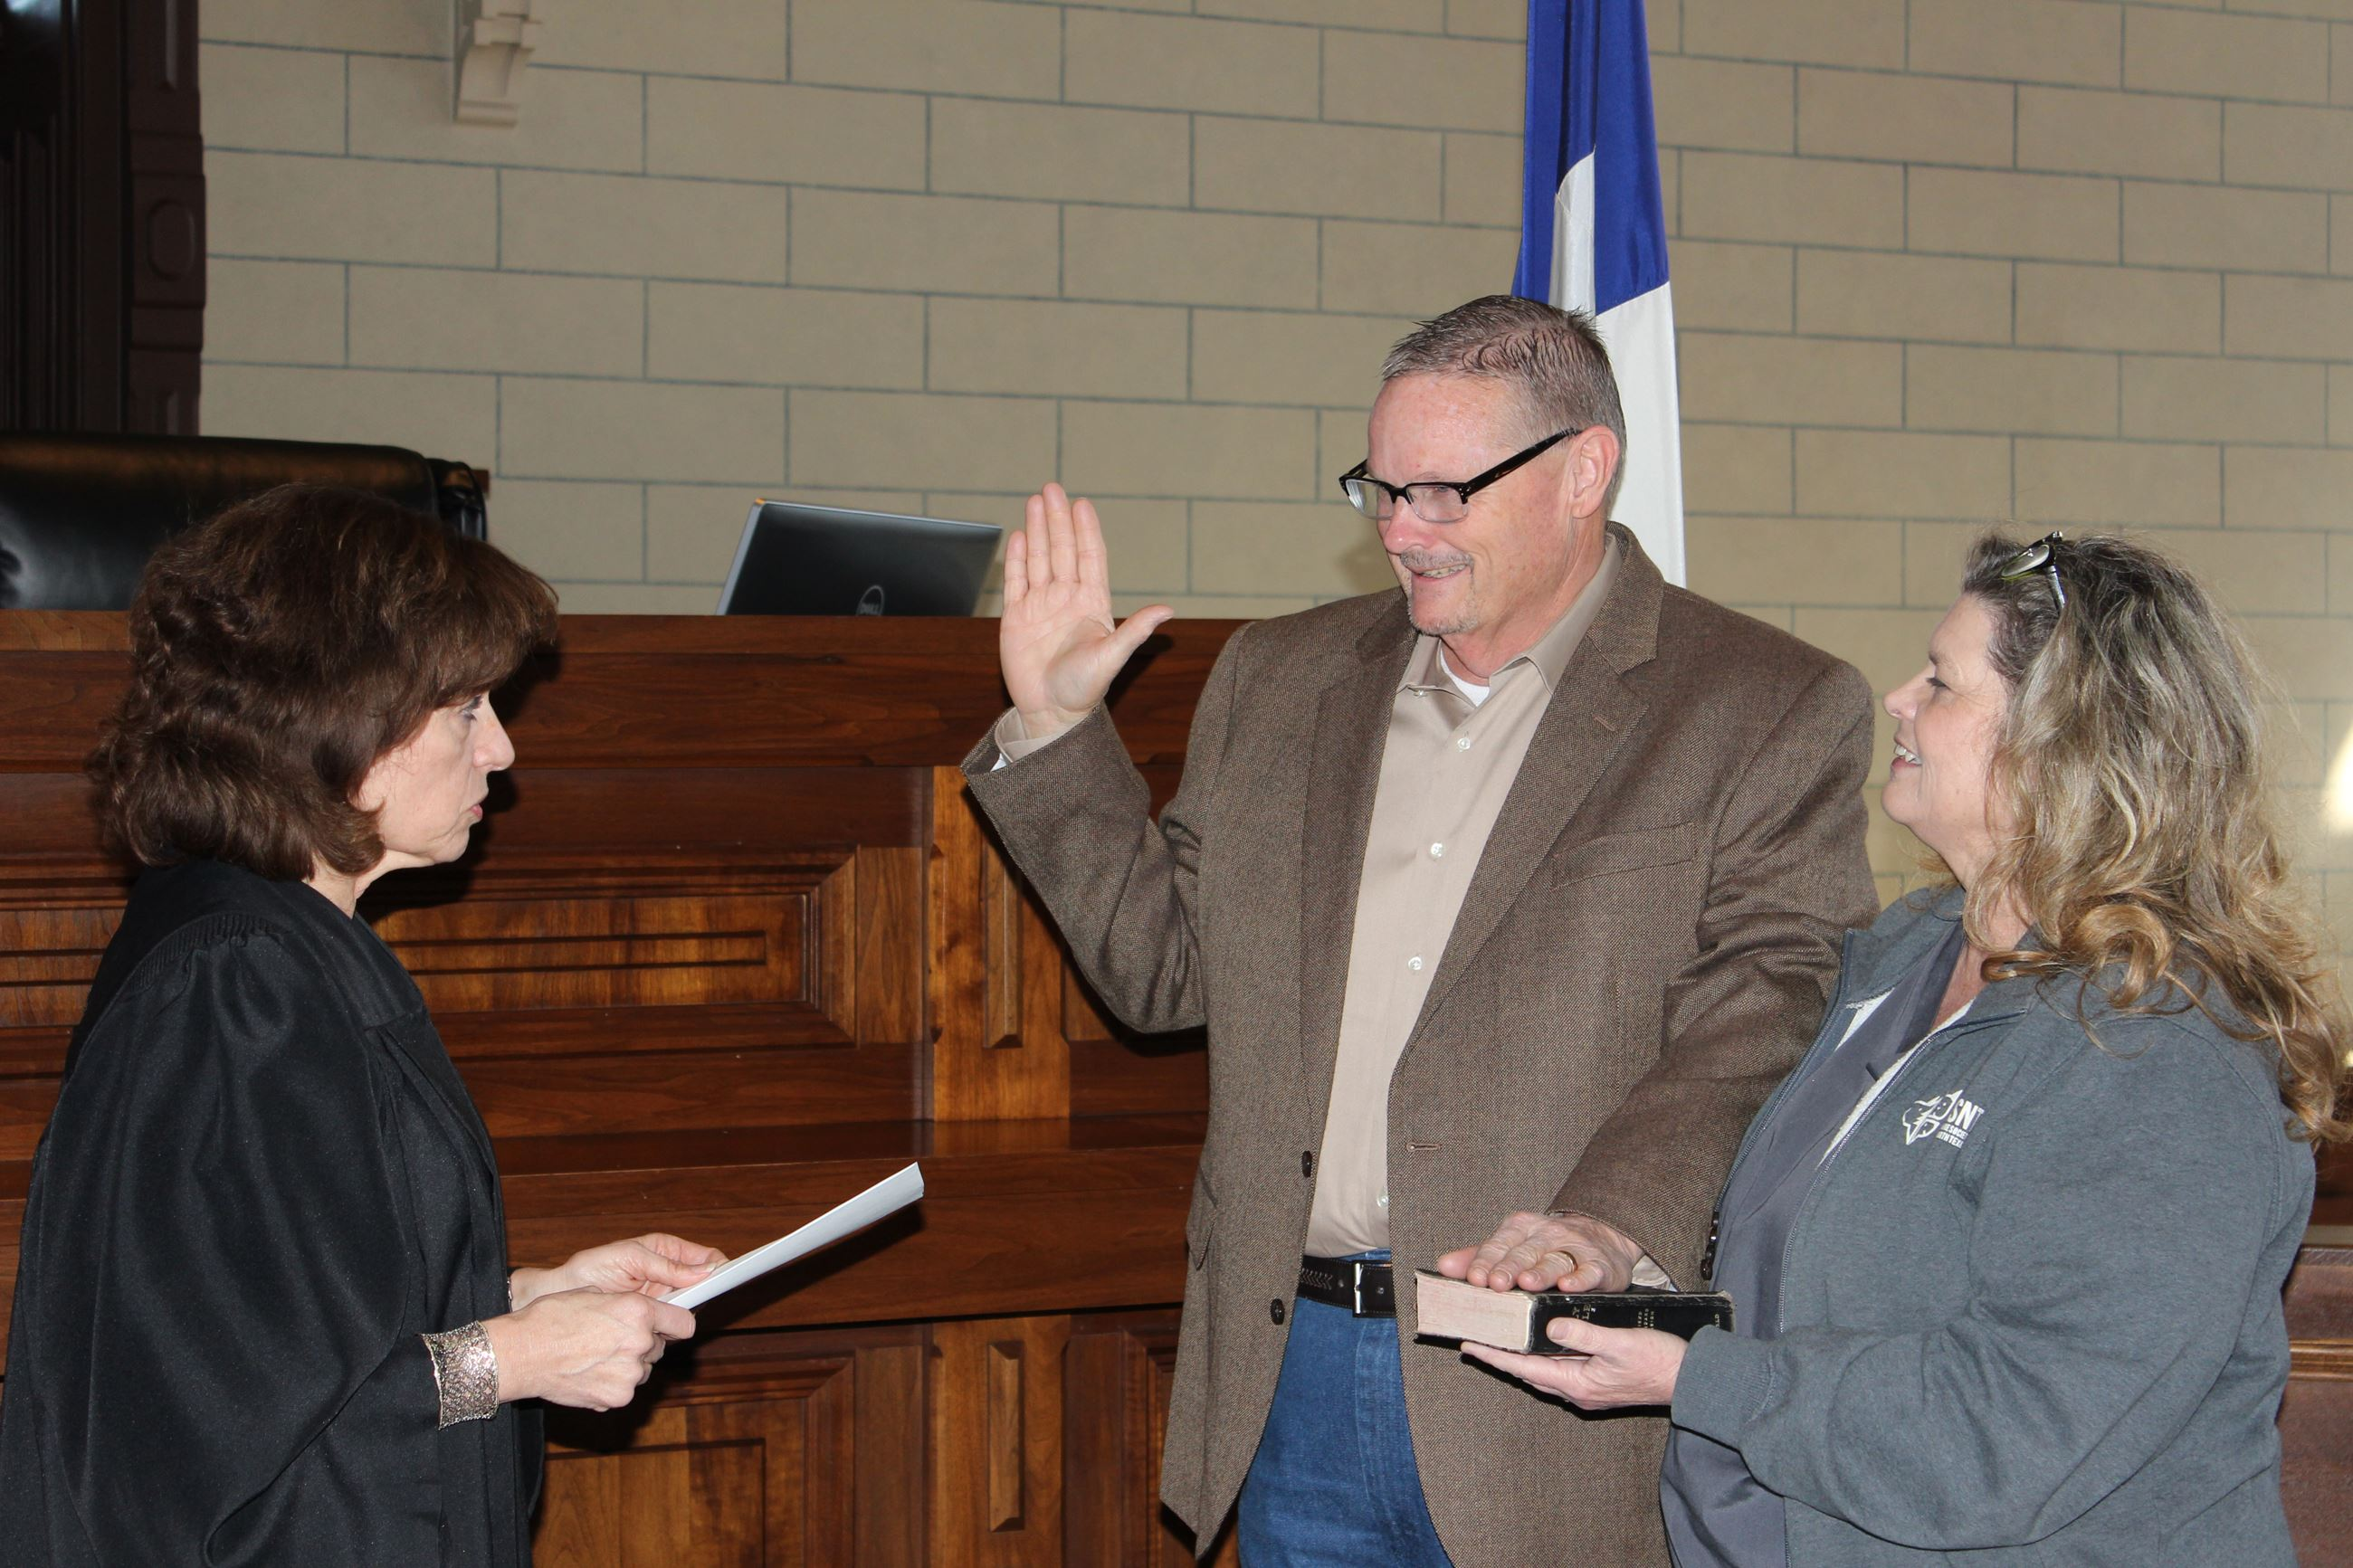 Swearing in of Precinct 1 Constable Ray Jones